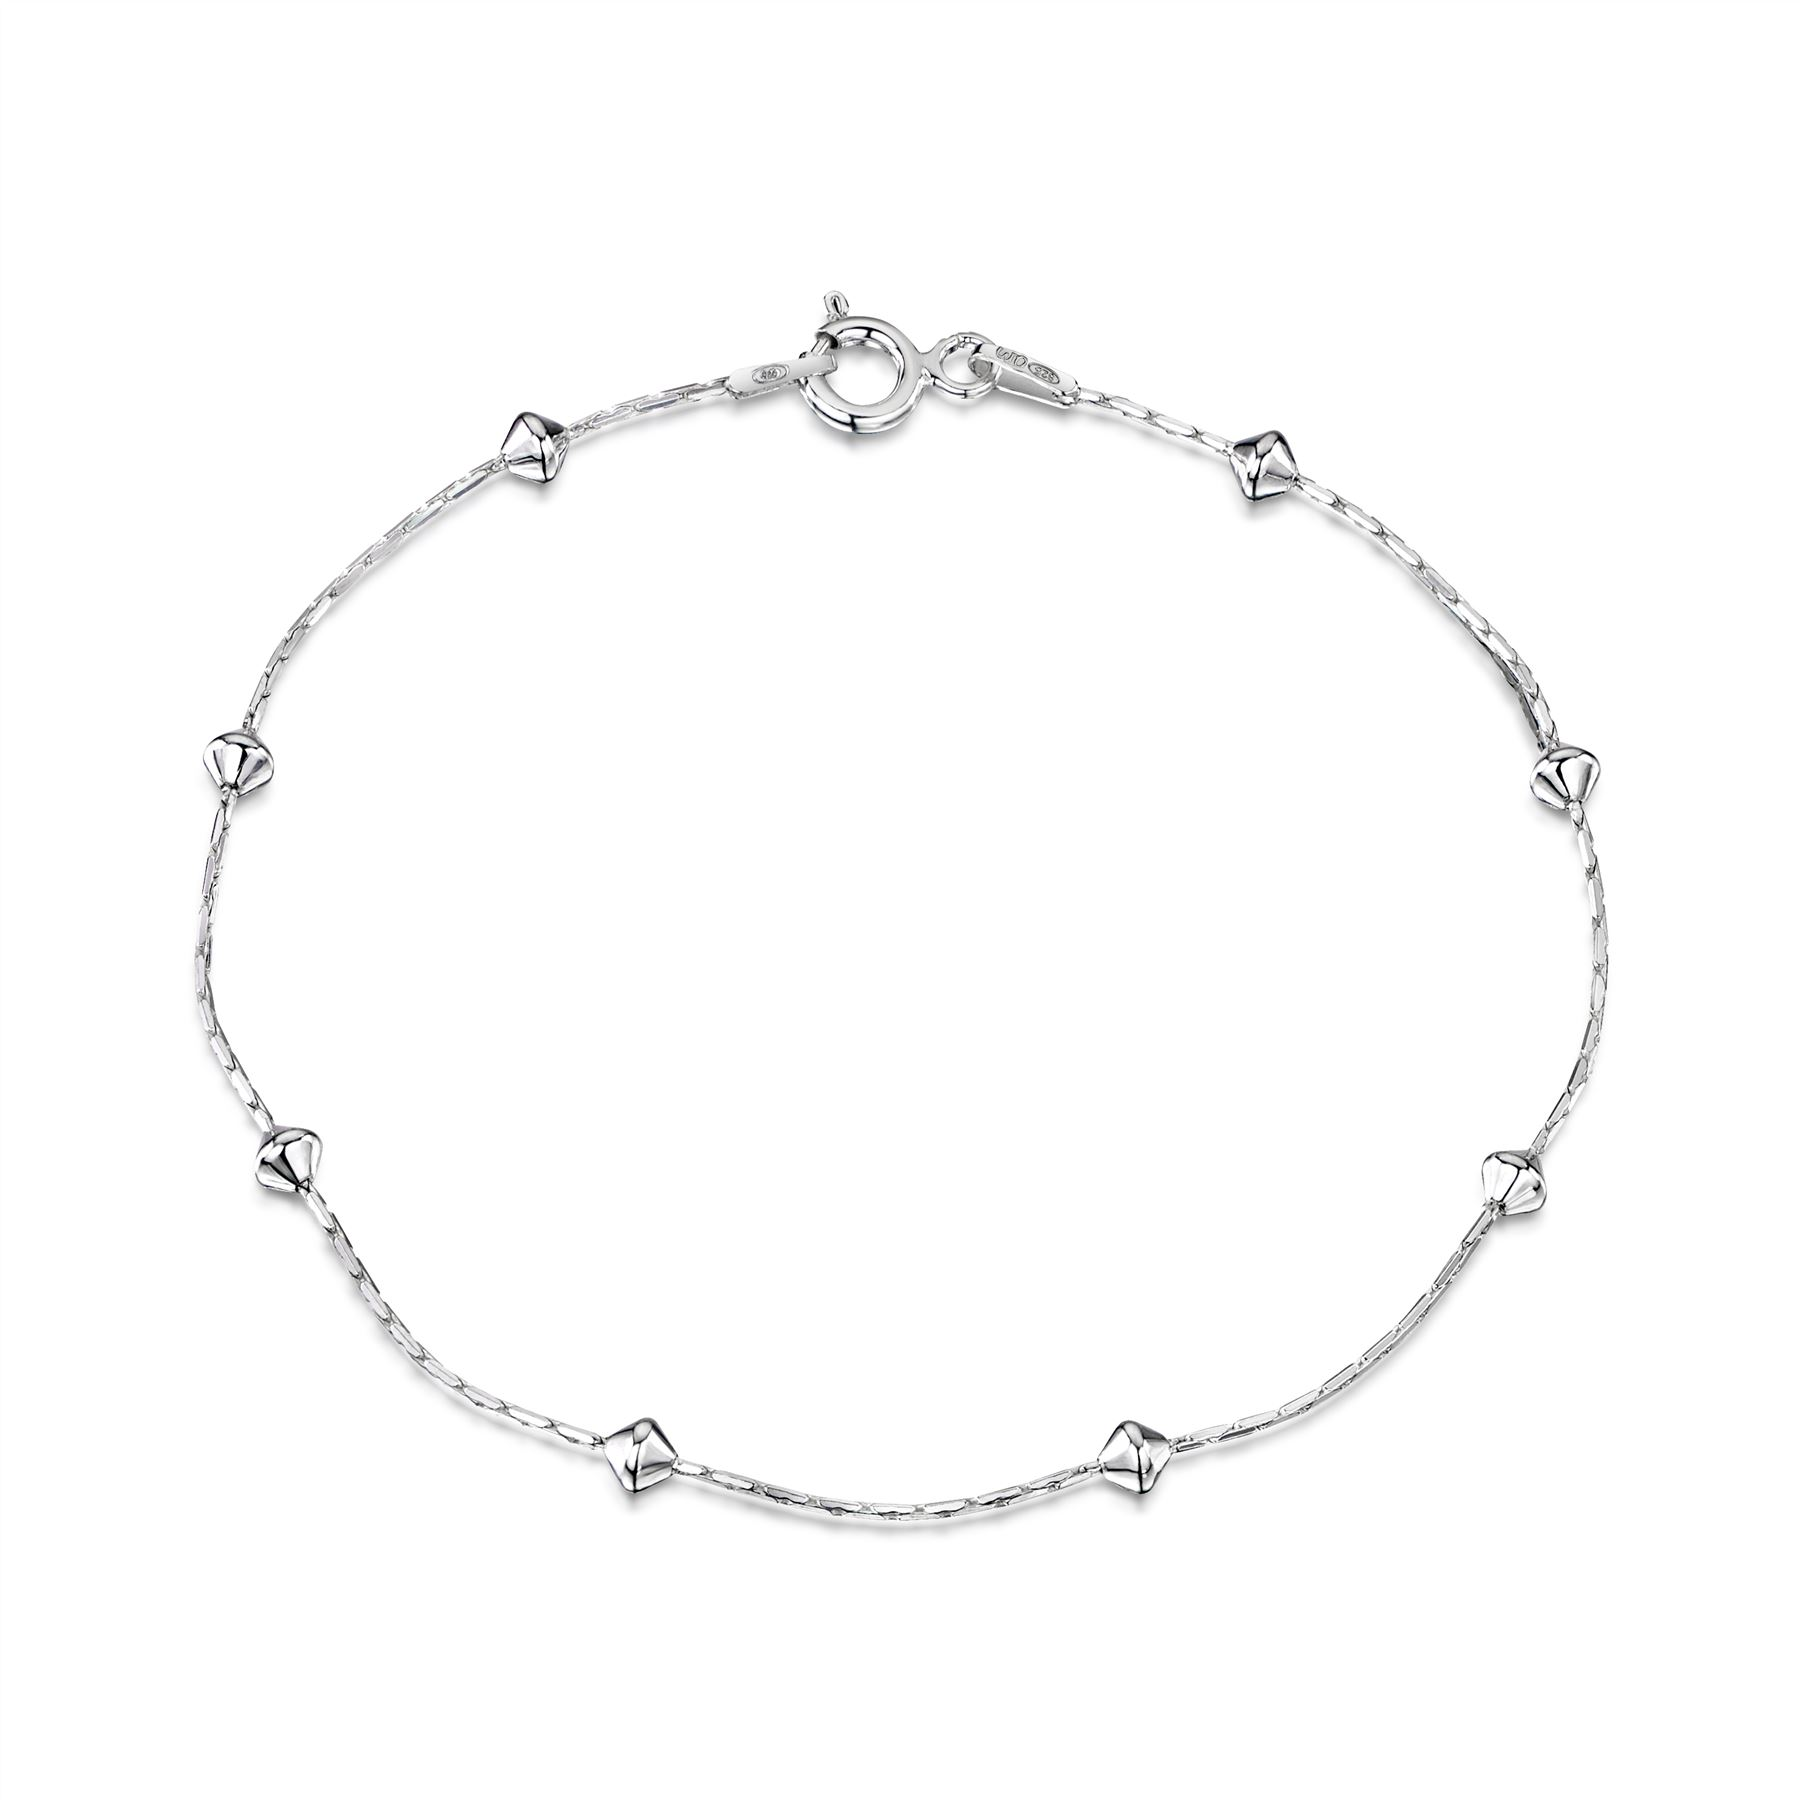 Amberta-Jewelry-Genuine-925-Sterling-Silver-Bracelet-Bangle-Chain-Made-in-Italy thumbnail 2